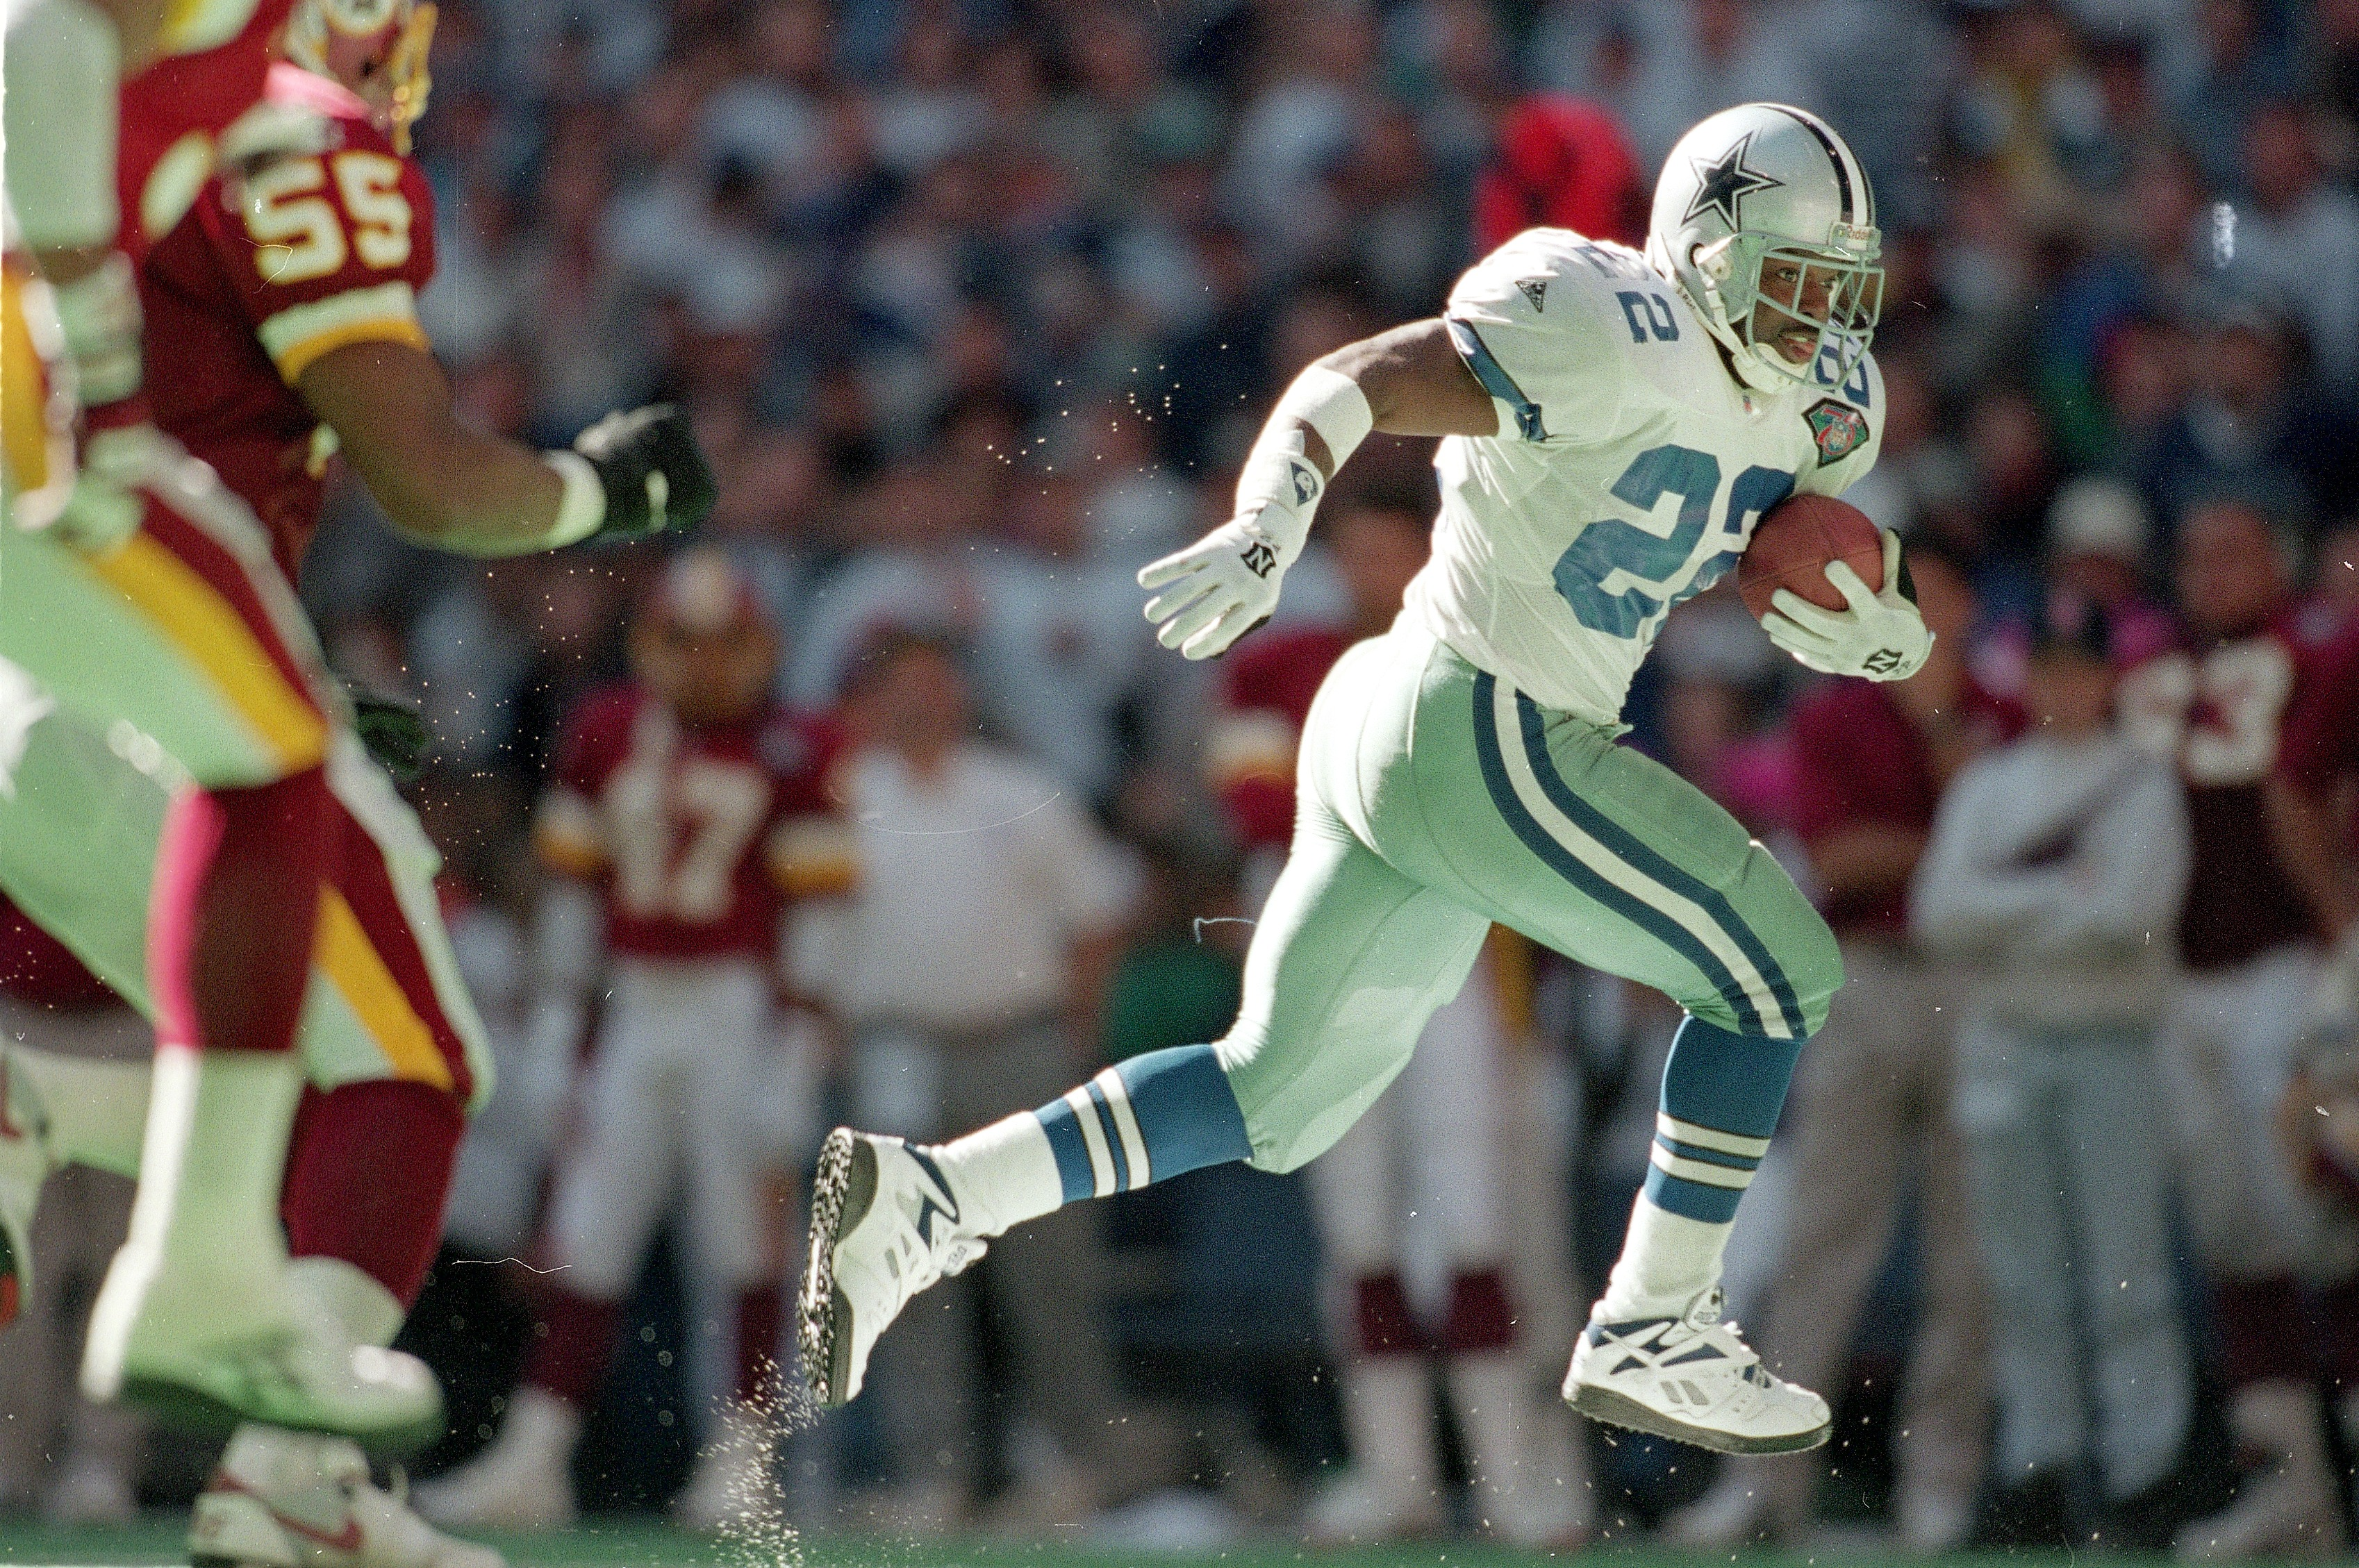 Dallas Cowboys' Emmitt Smith in action against the Washington Redskins on November 20, 1994.